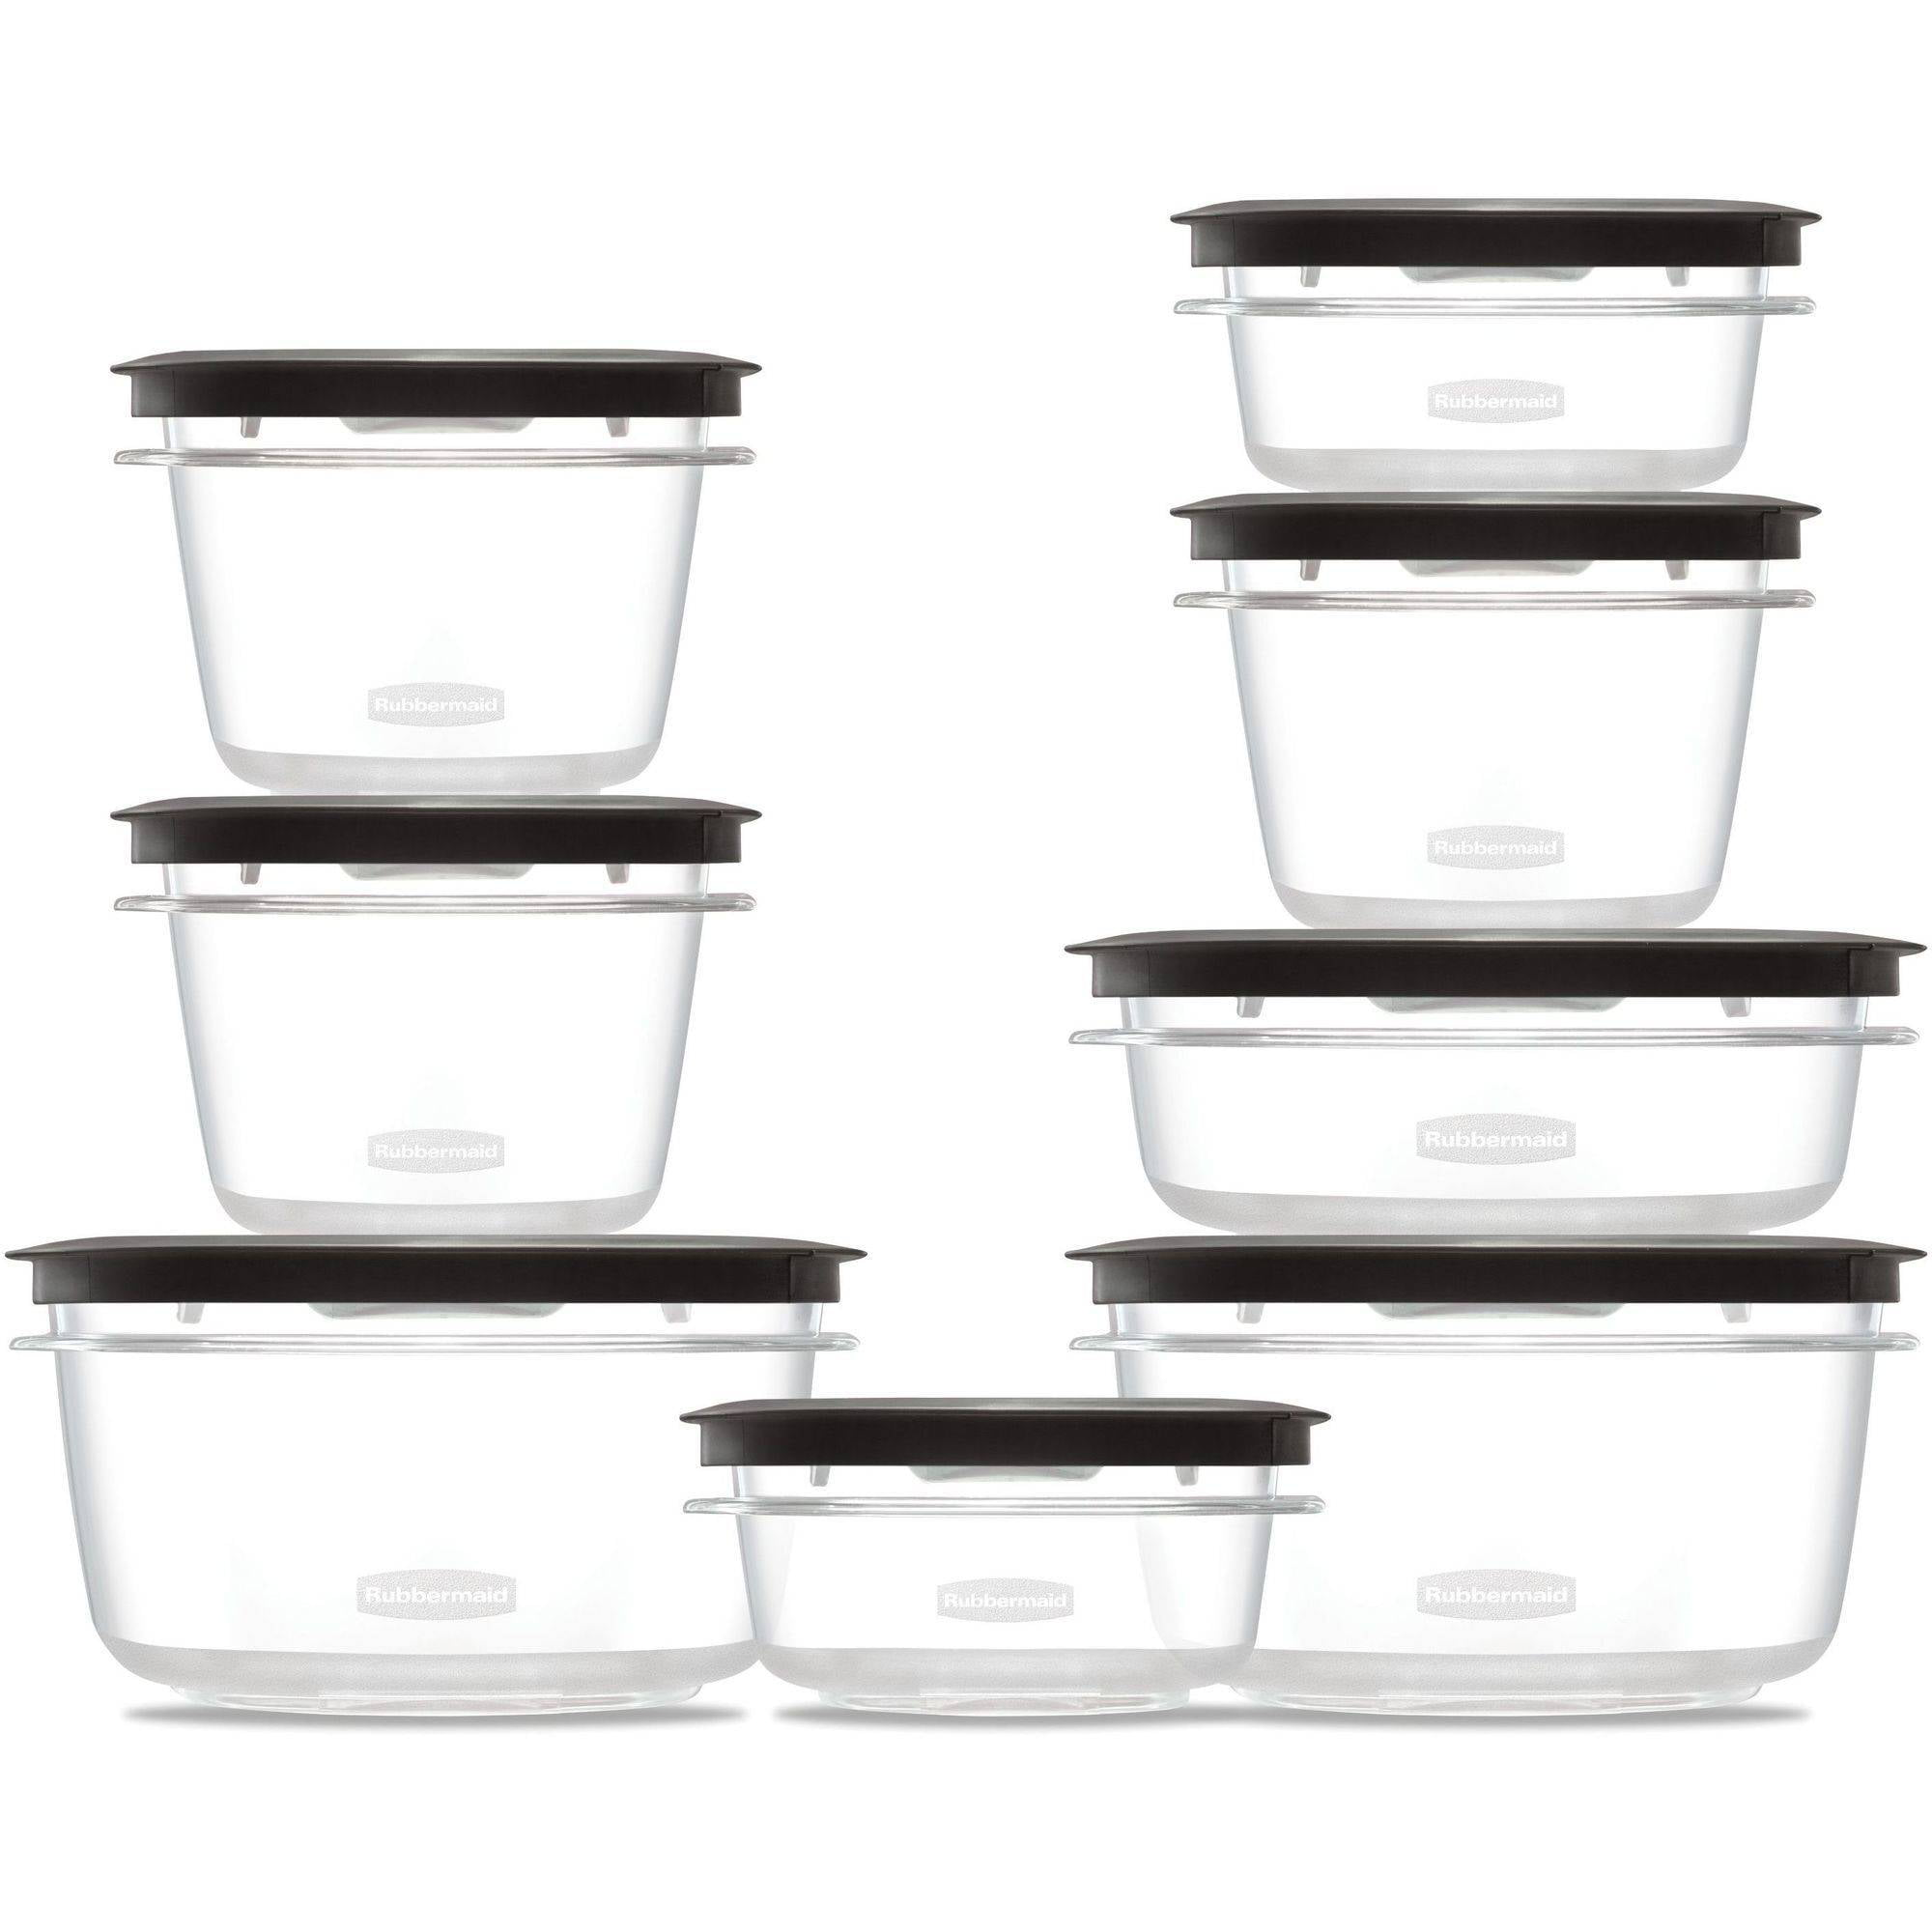 Rubbermaid Premier Easy Find Lids Meal Prep And Food